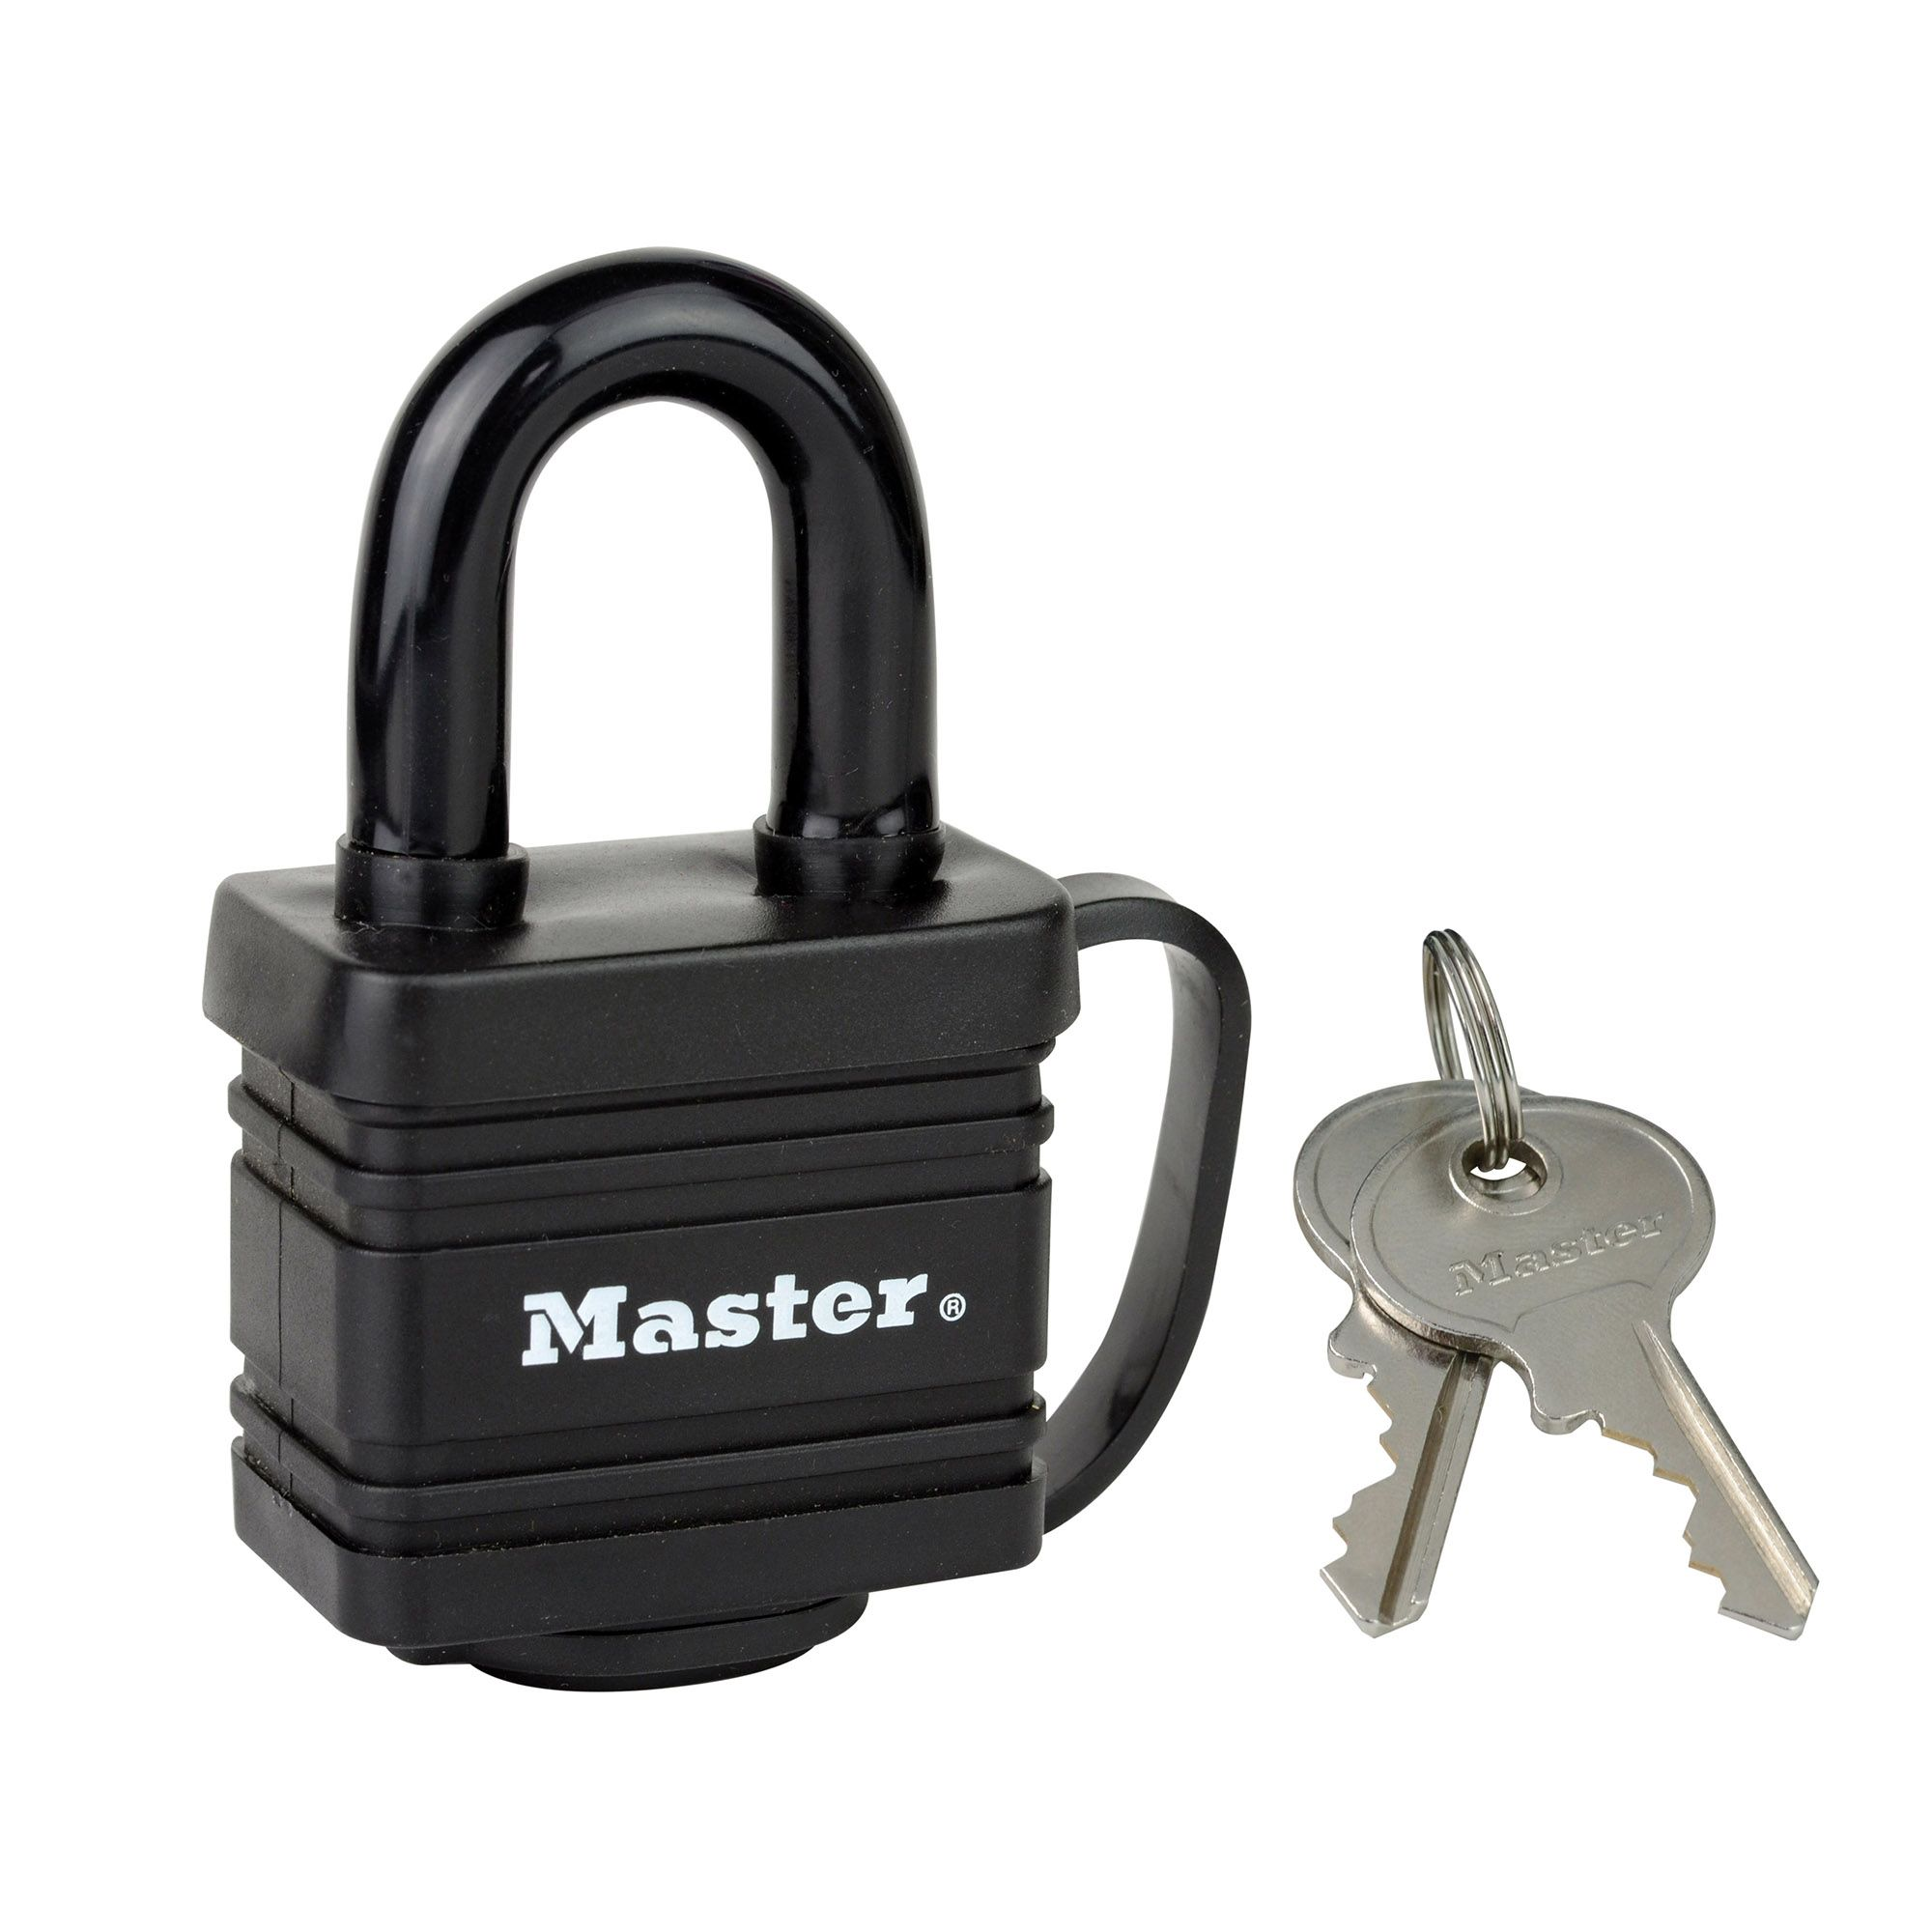 Master Lock Weather Tough Laminated Steel Keyed Hardened